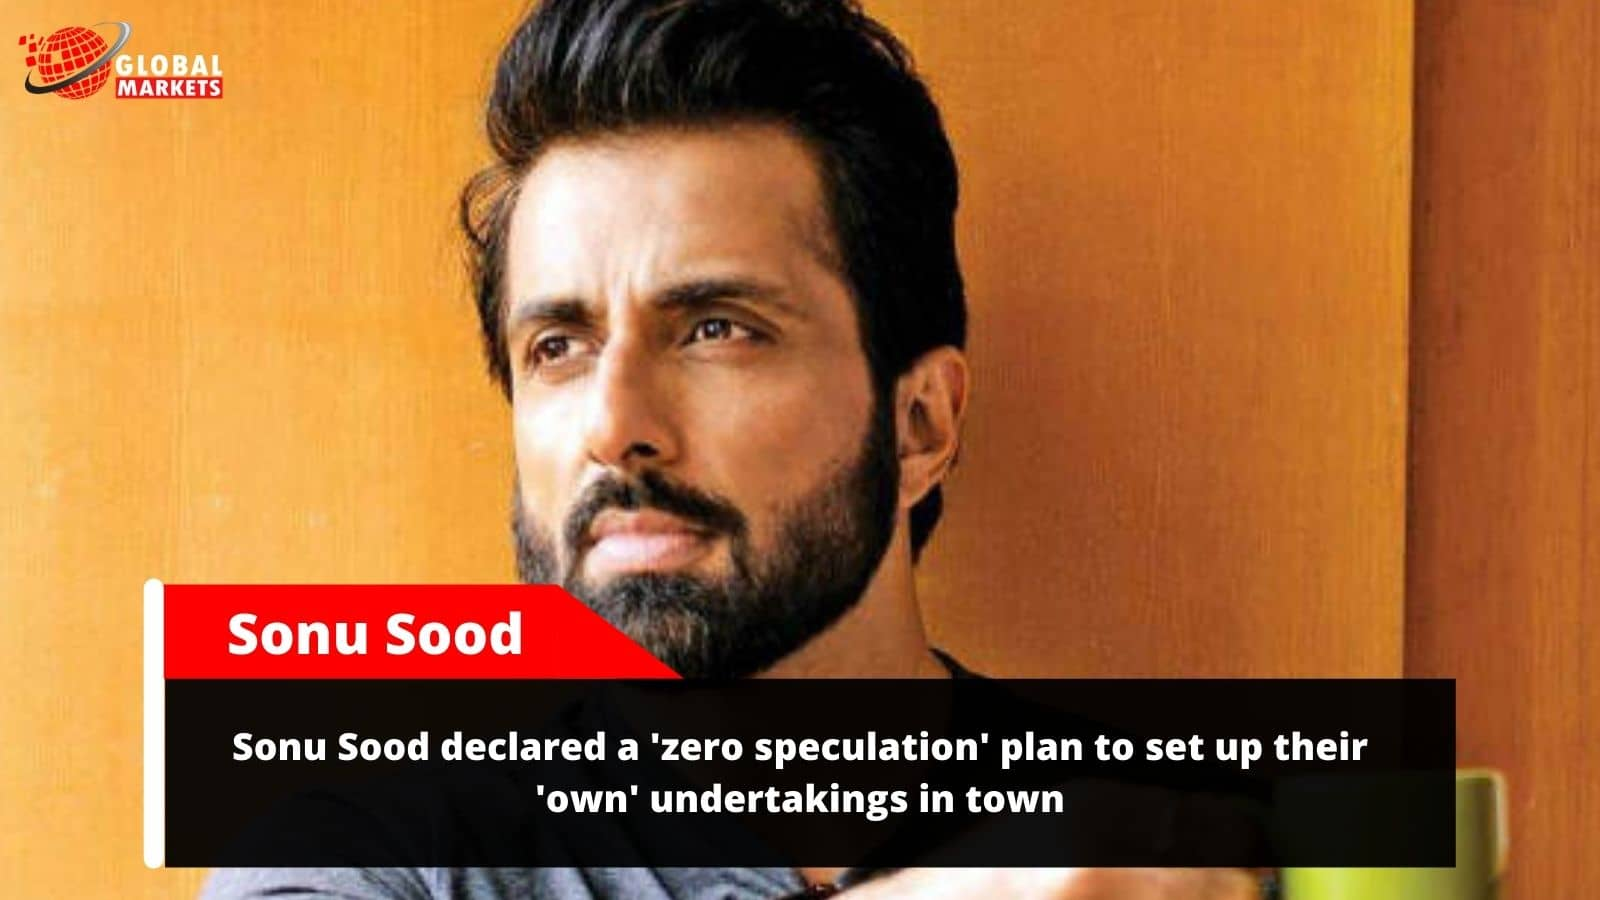 Sonu Sood declared a 'zero speculation' plan to set up their 'own' undertakings in town